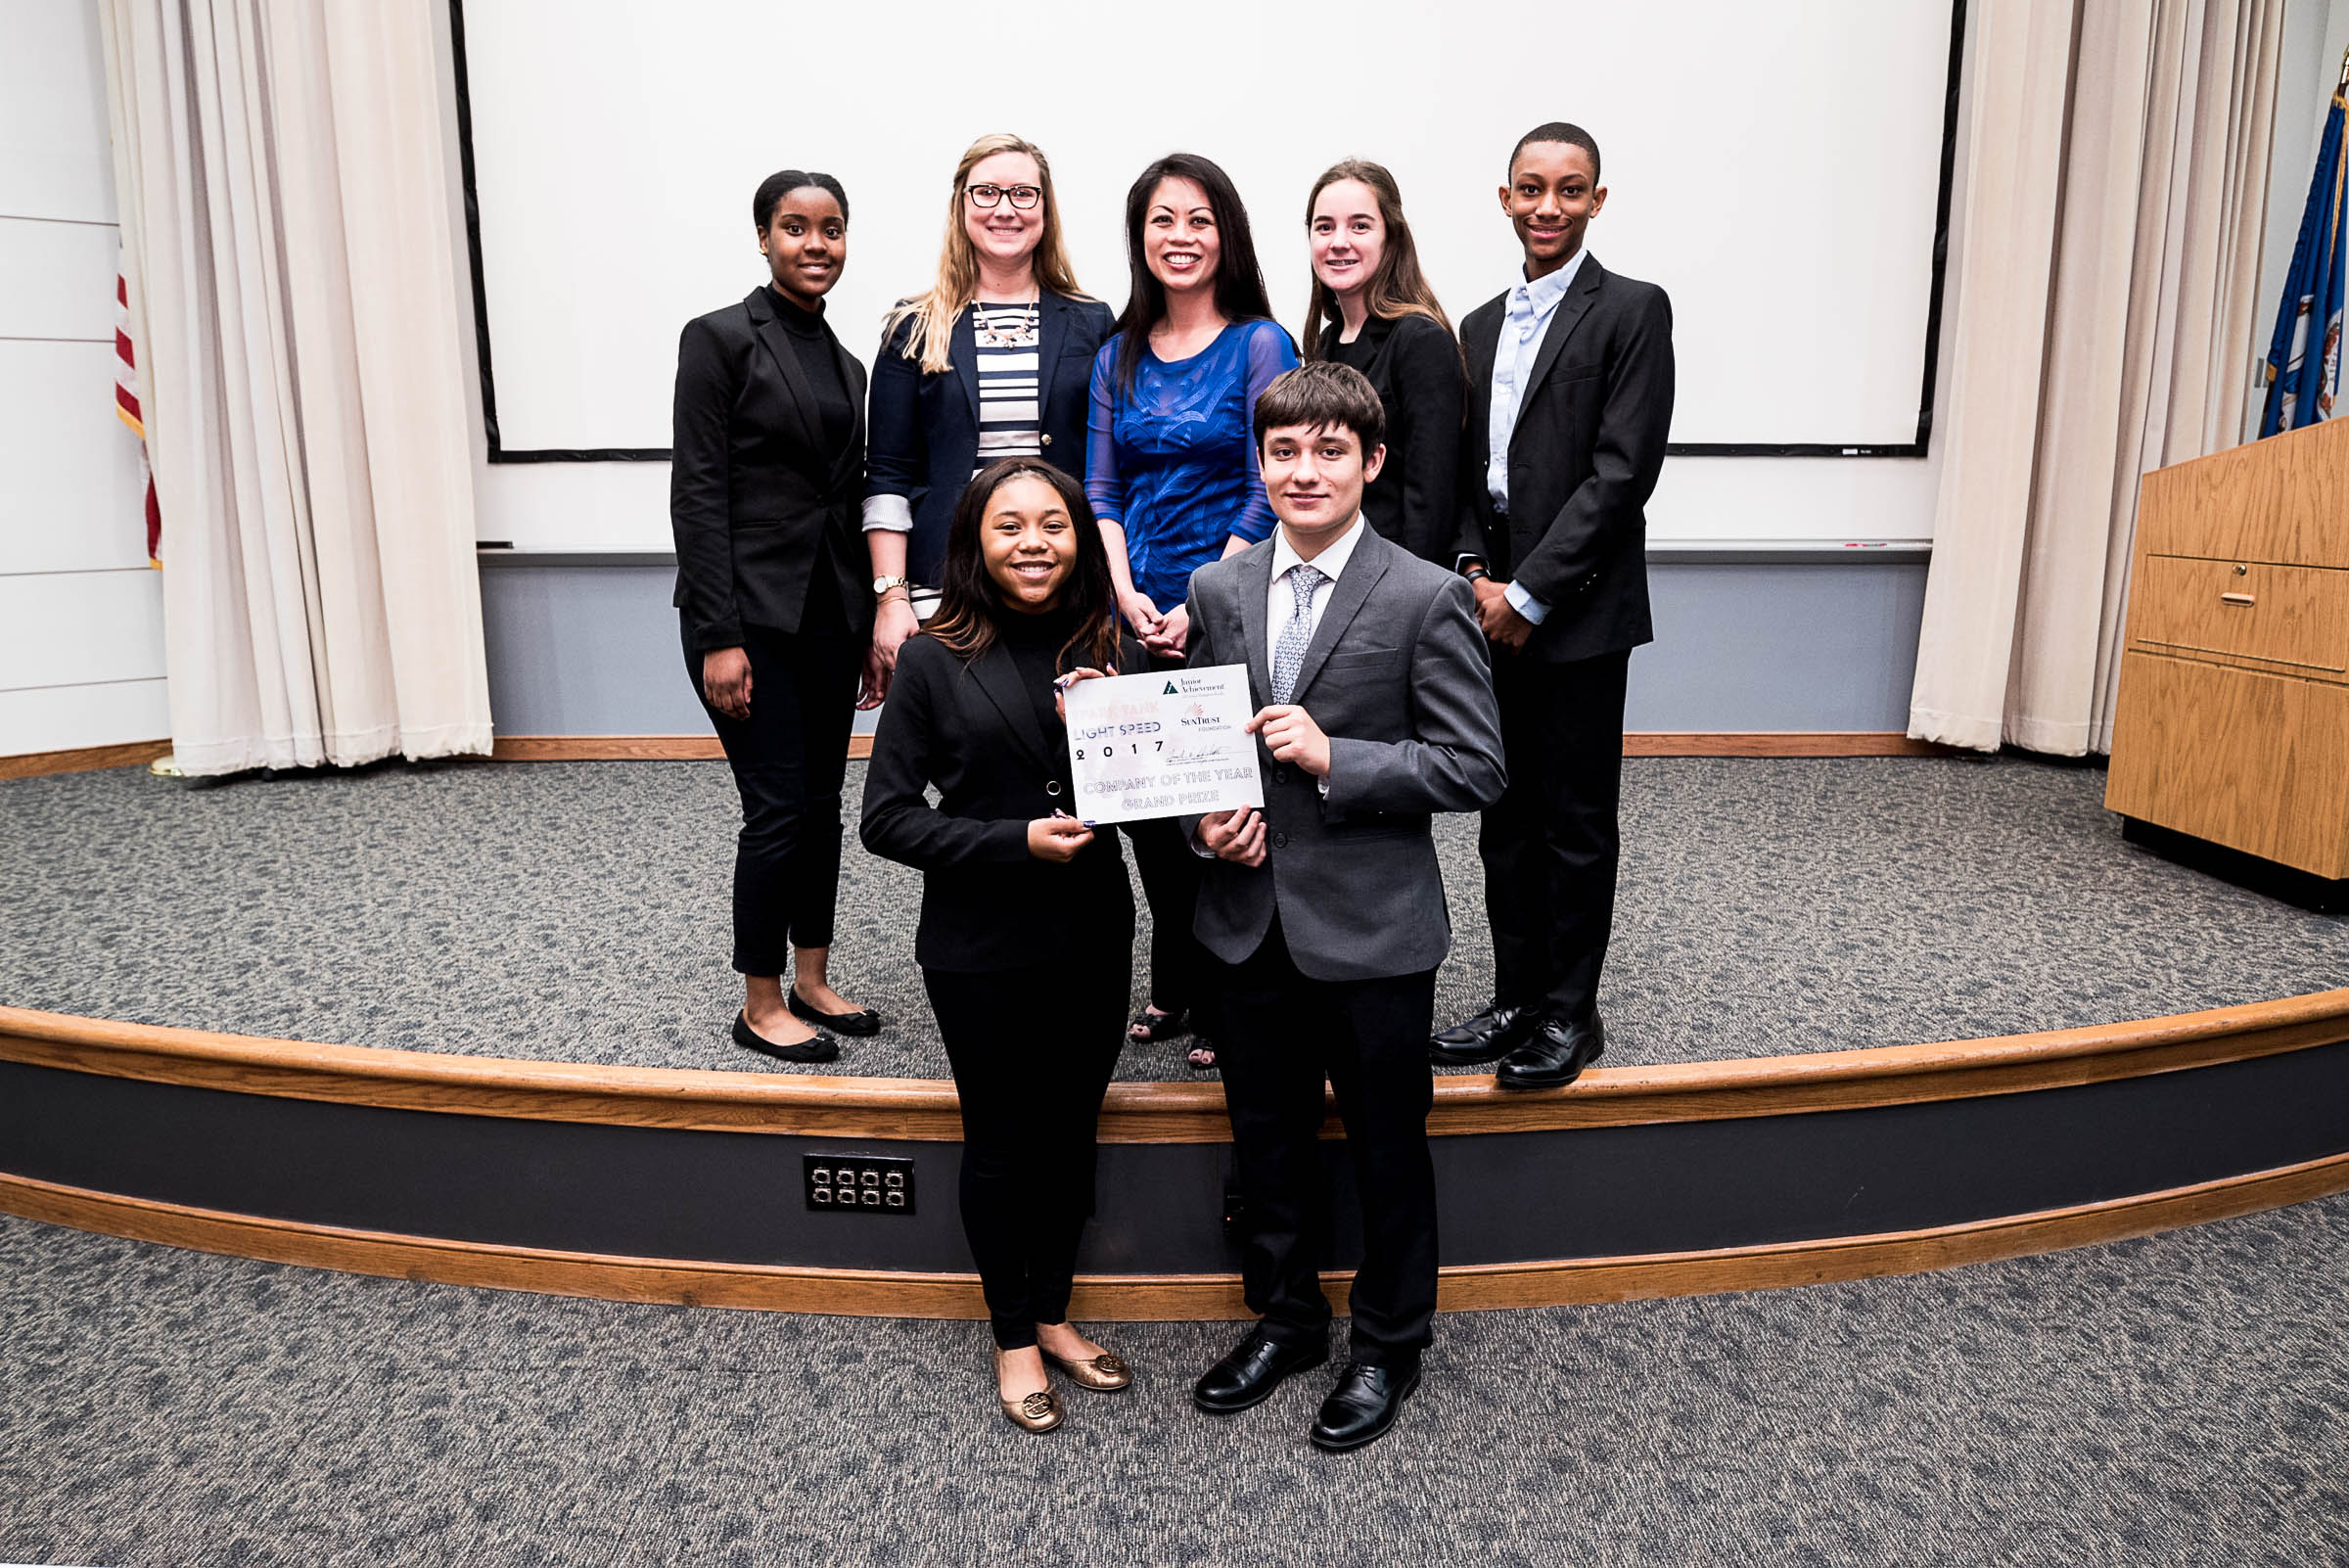 Focus360 of Kempsville Entrepreneurship and Business Academy took home top honors as JA Company of the Year (pictured with teacher Ashley Houchins and Cheryl Tan of Hampton Roads Business Weekly)!